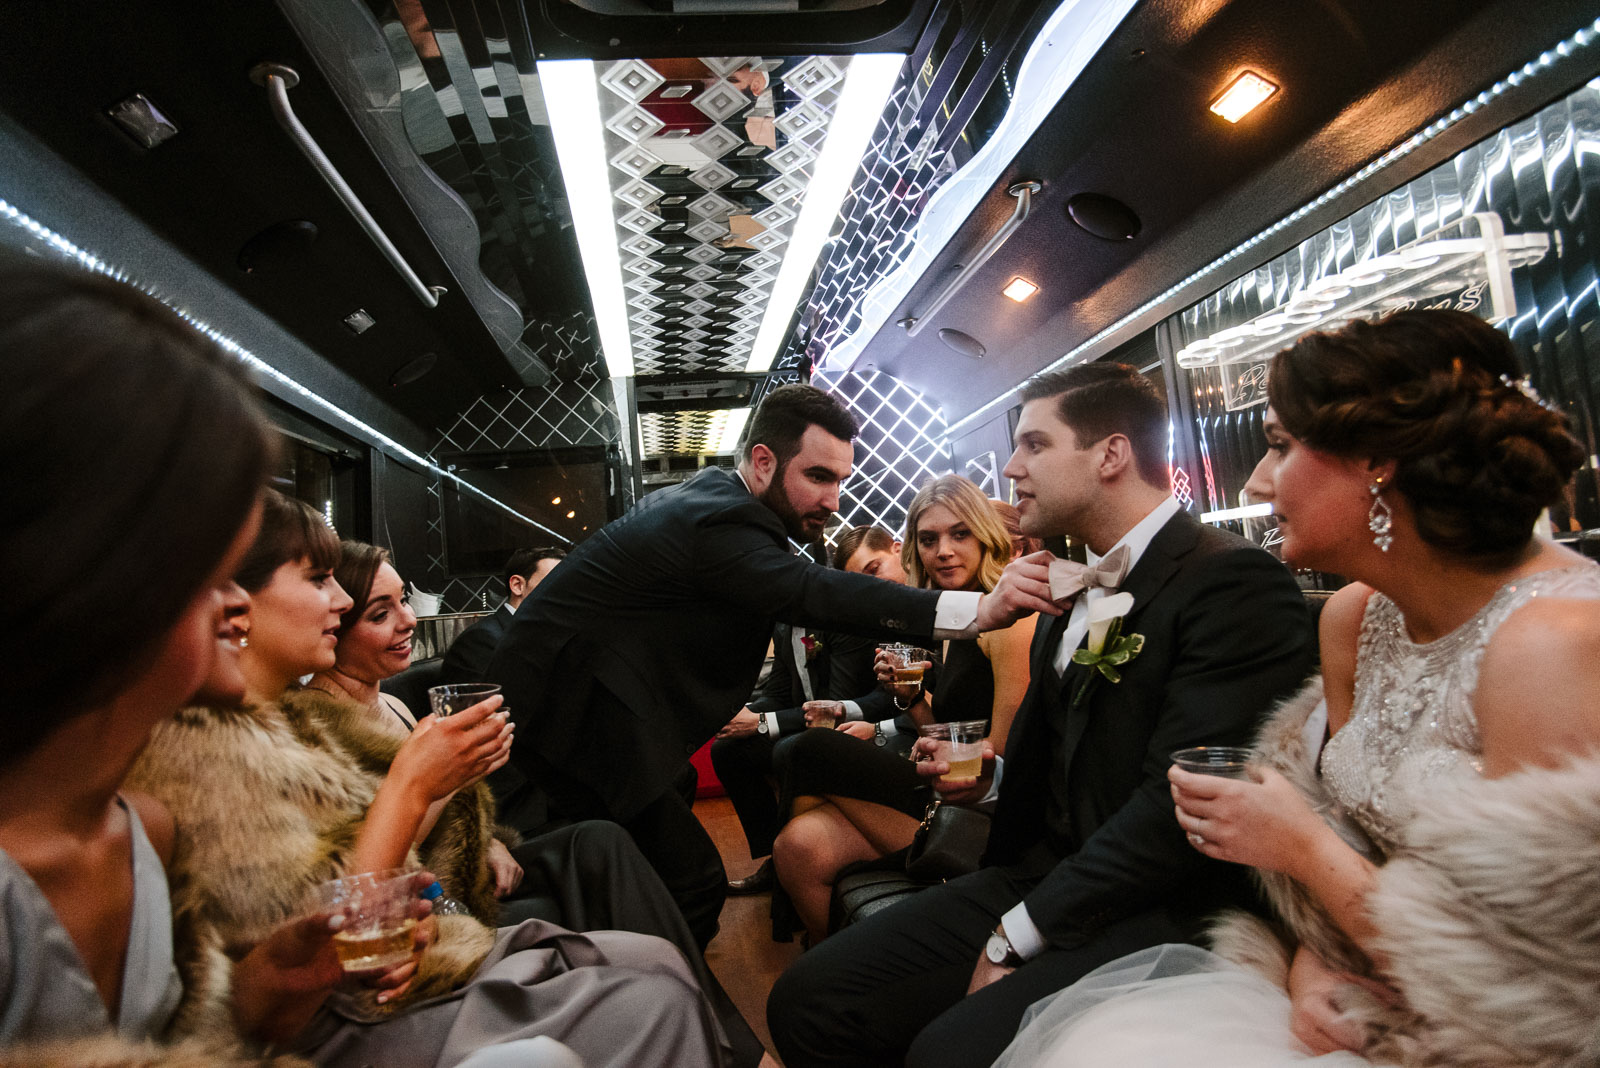 Groomsman helps groom with his tie in a limo